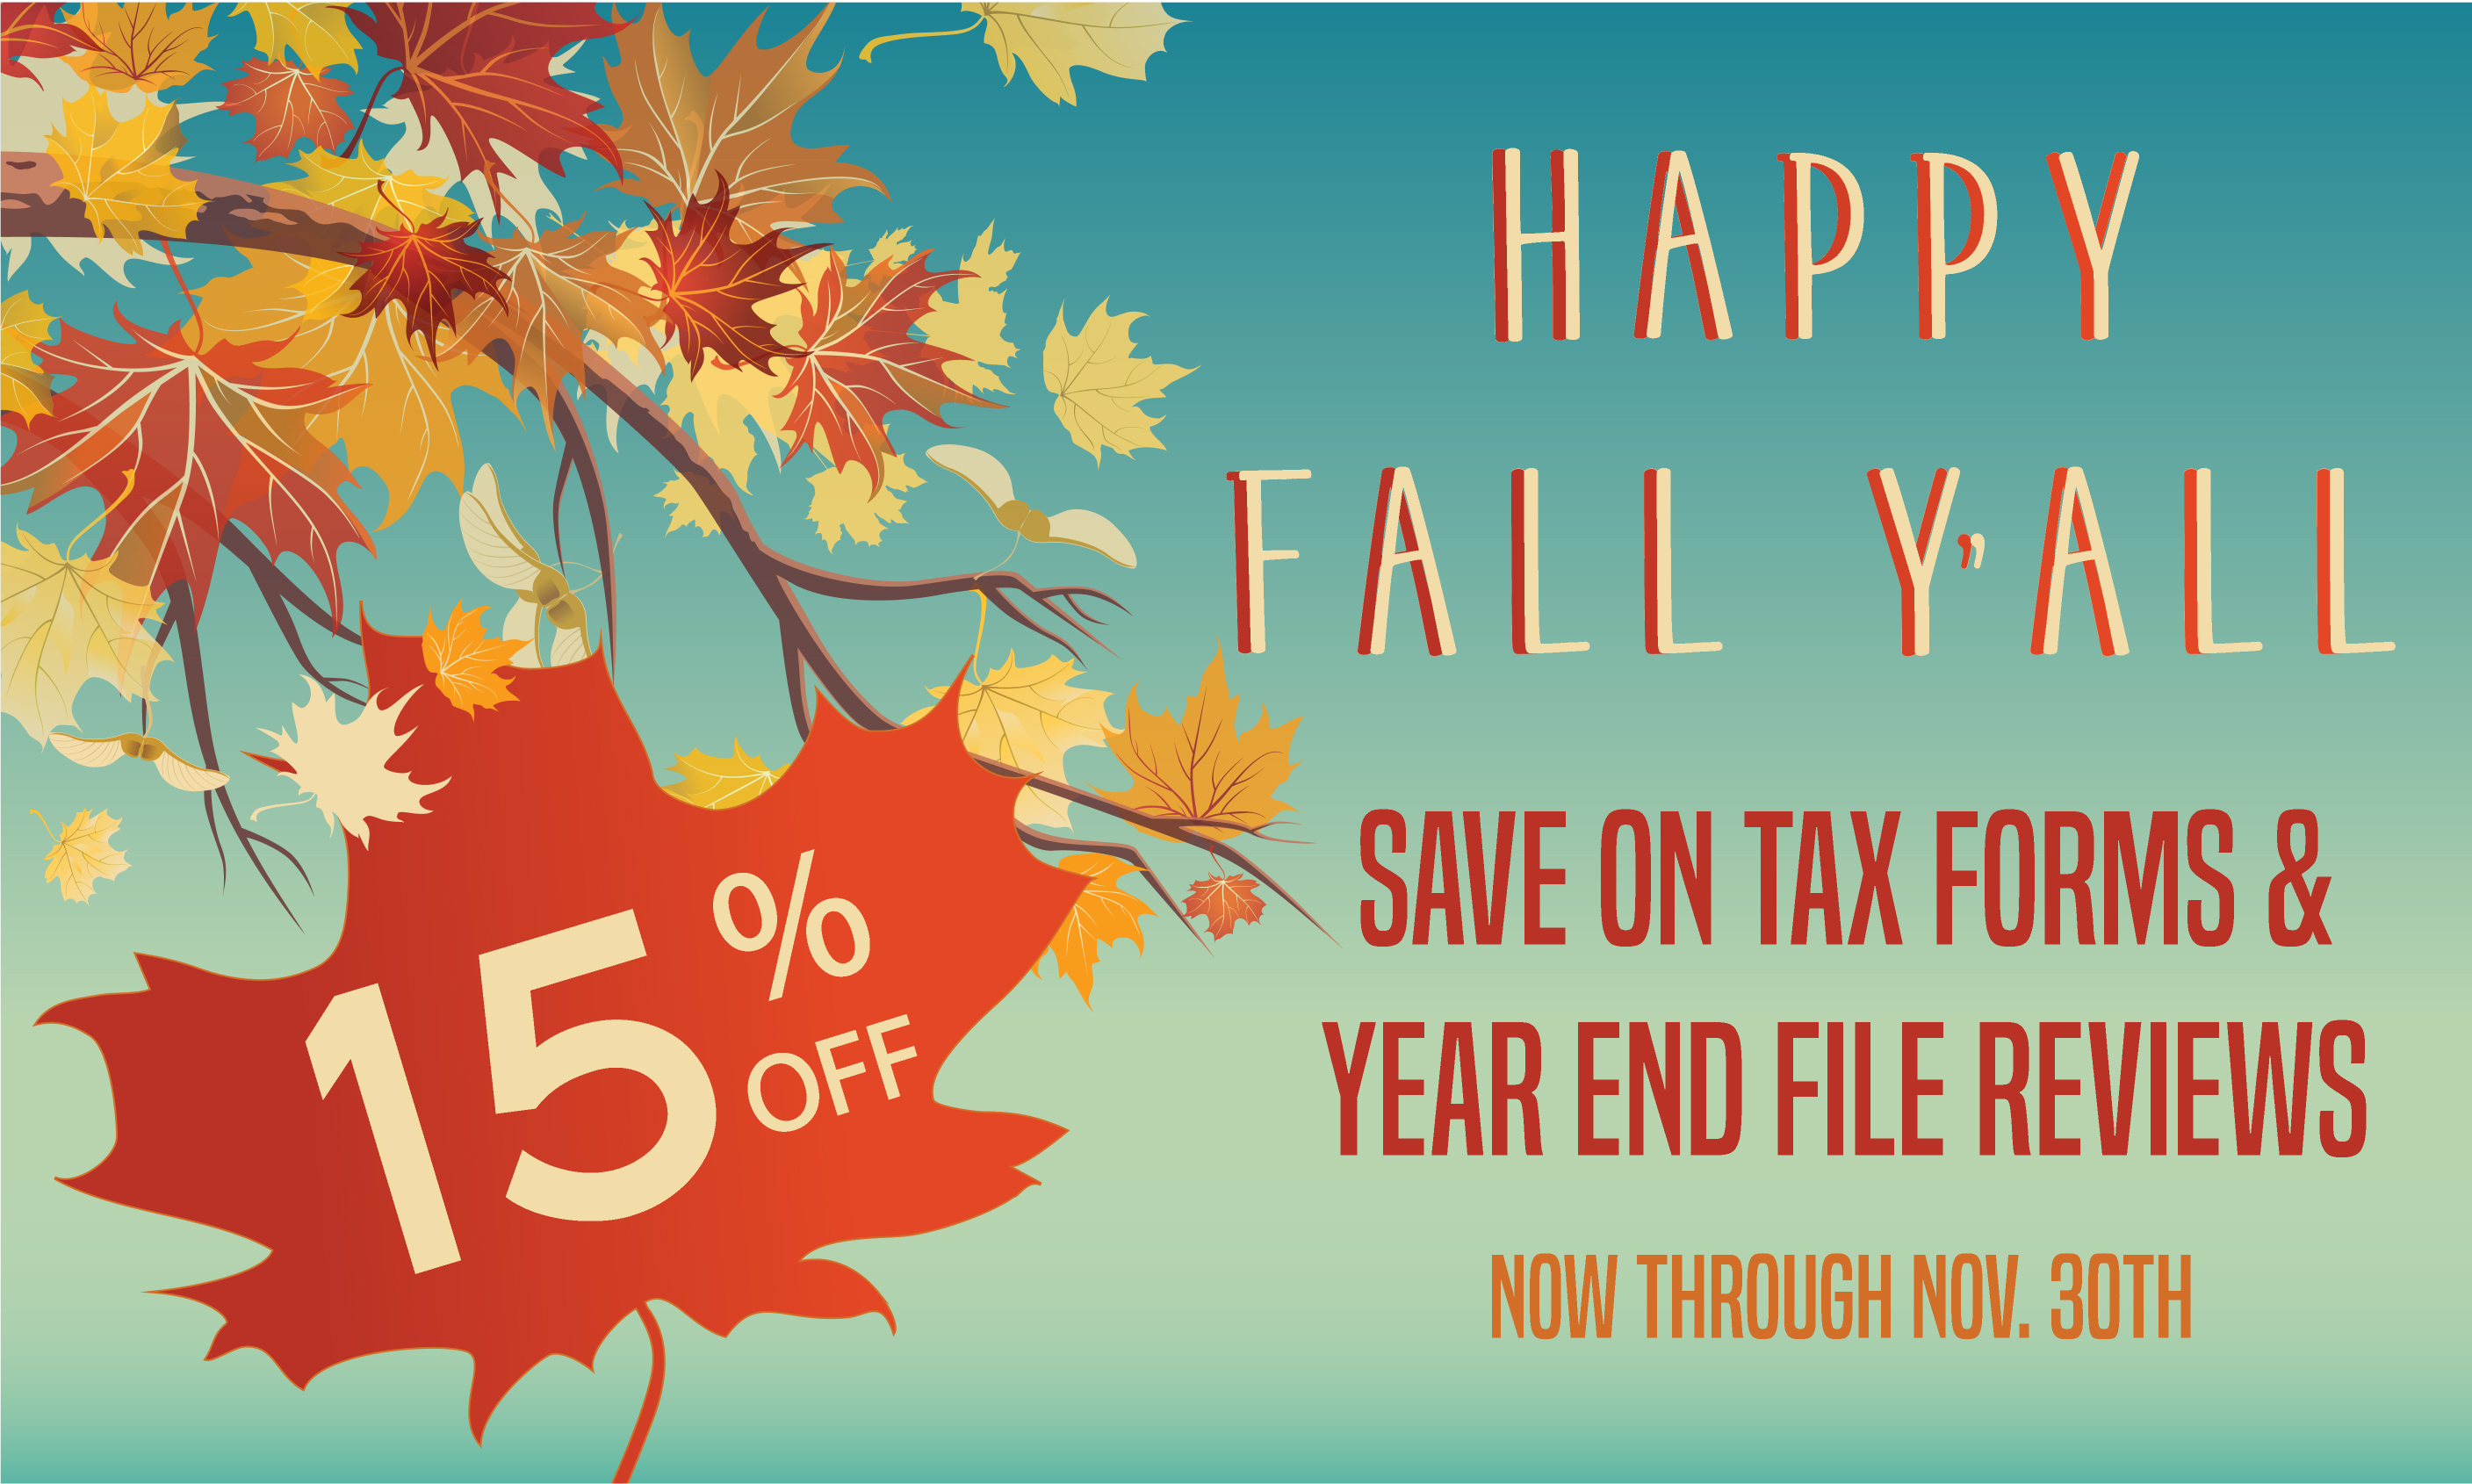 15% OFF FALL SALE